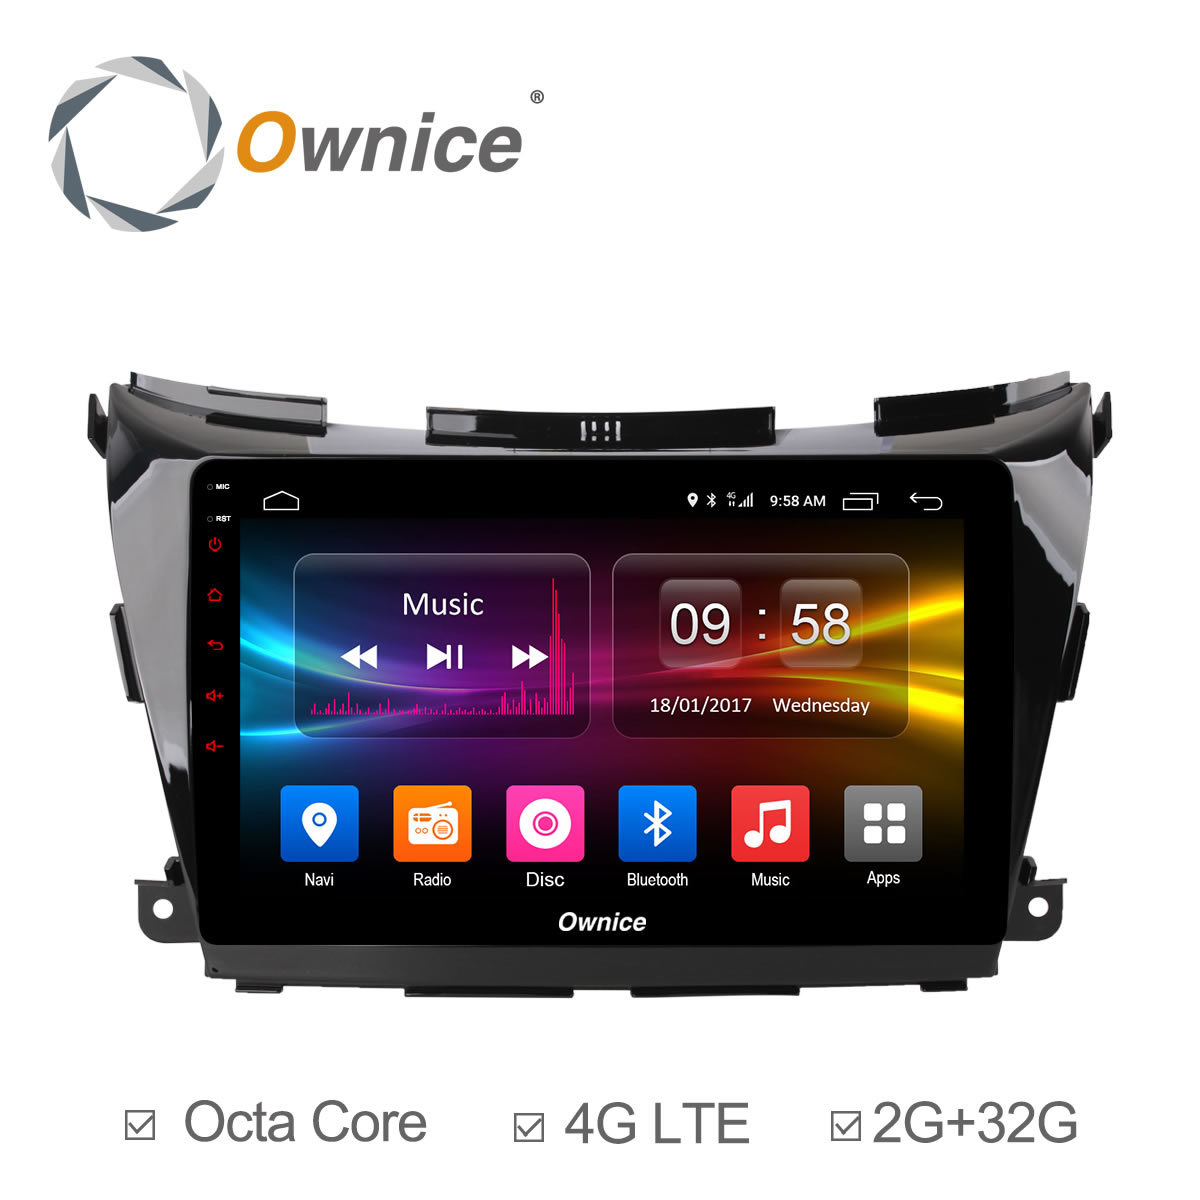 Ownice C500 + 10.1 octa base Android 6.0 GPS NAVI DVD Radio Player Pour Nissan Murano Z52 2015 ~ 2017 Soutien 4G SIM DAB + 32G ROM